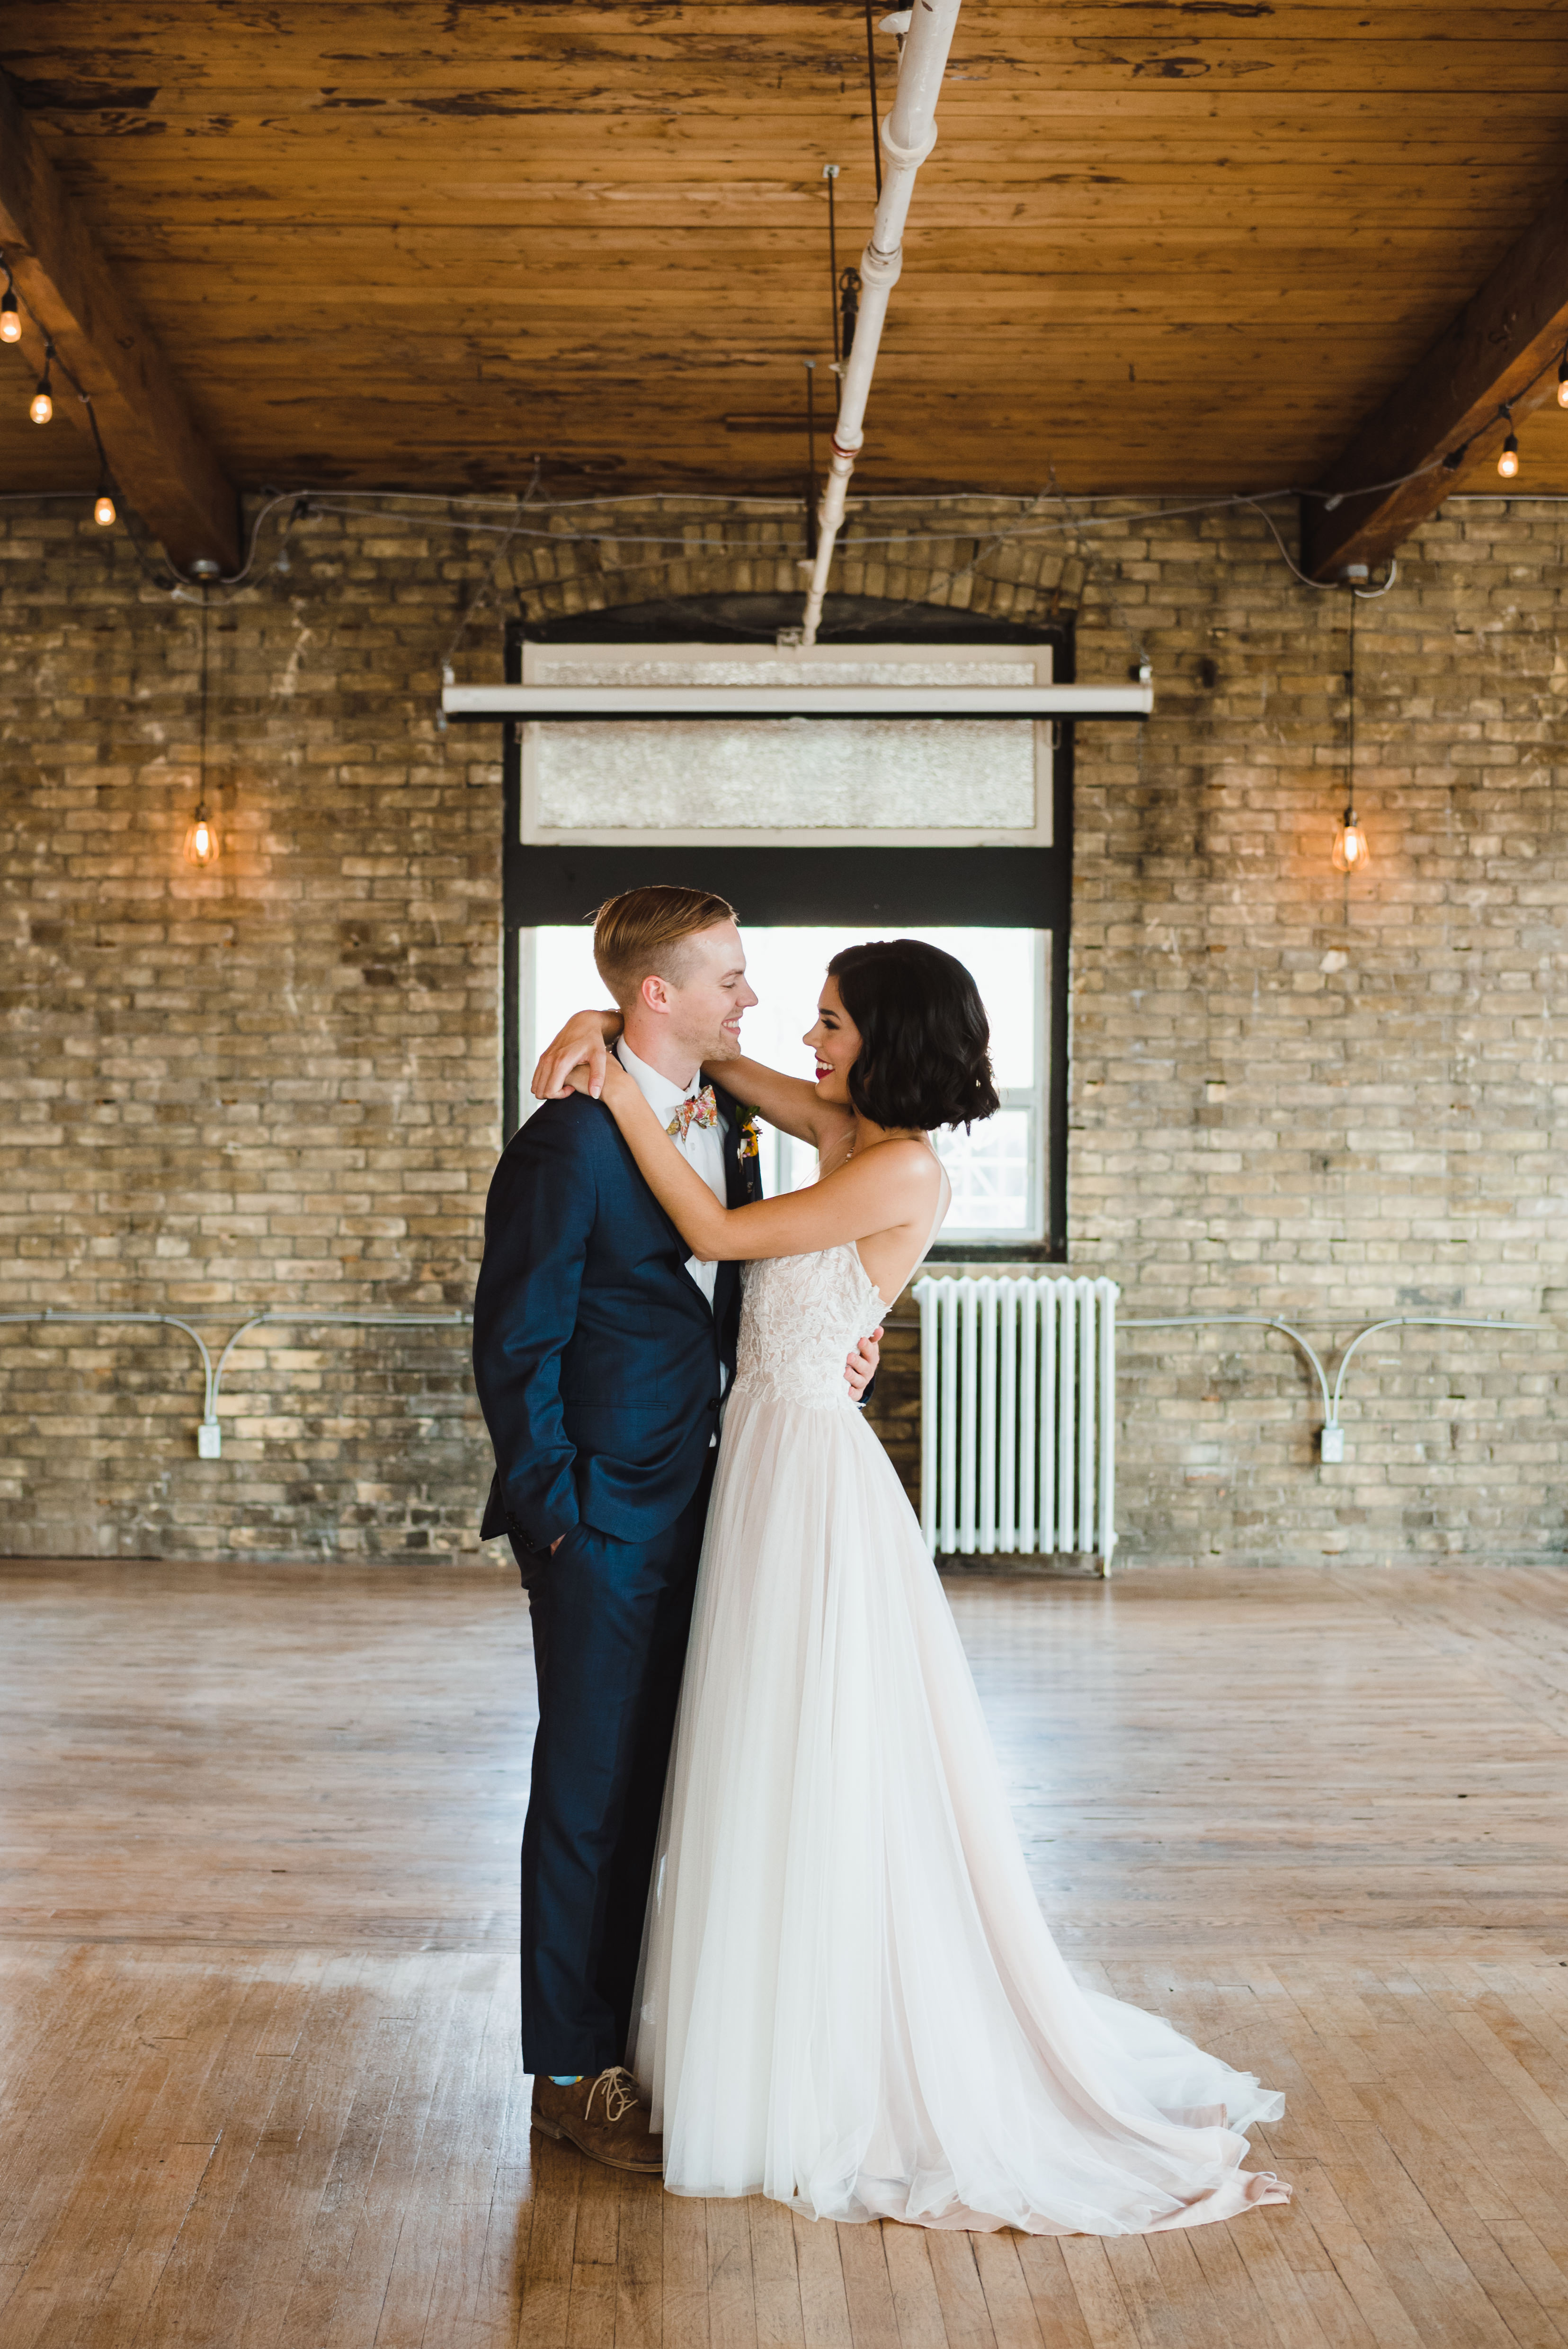 bride and groom slow dancing inside old brick building Toronto wedding photography